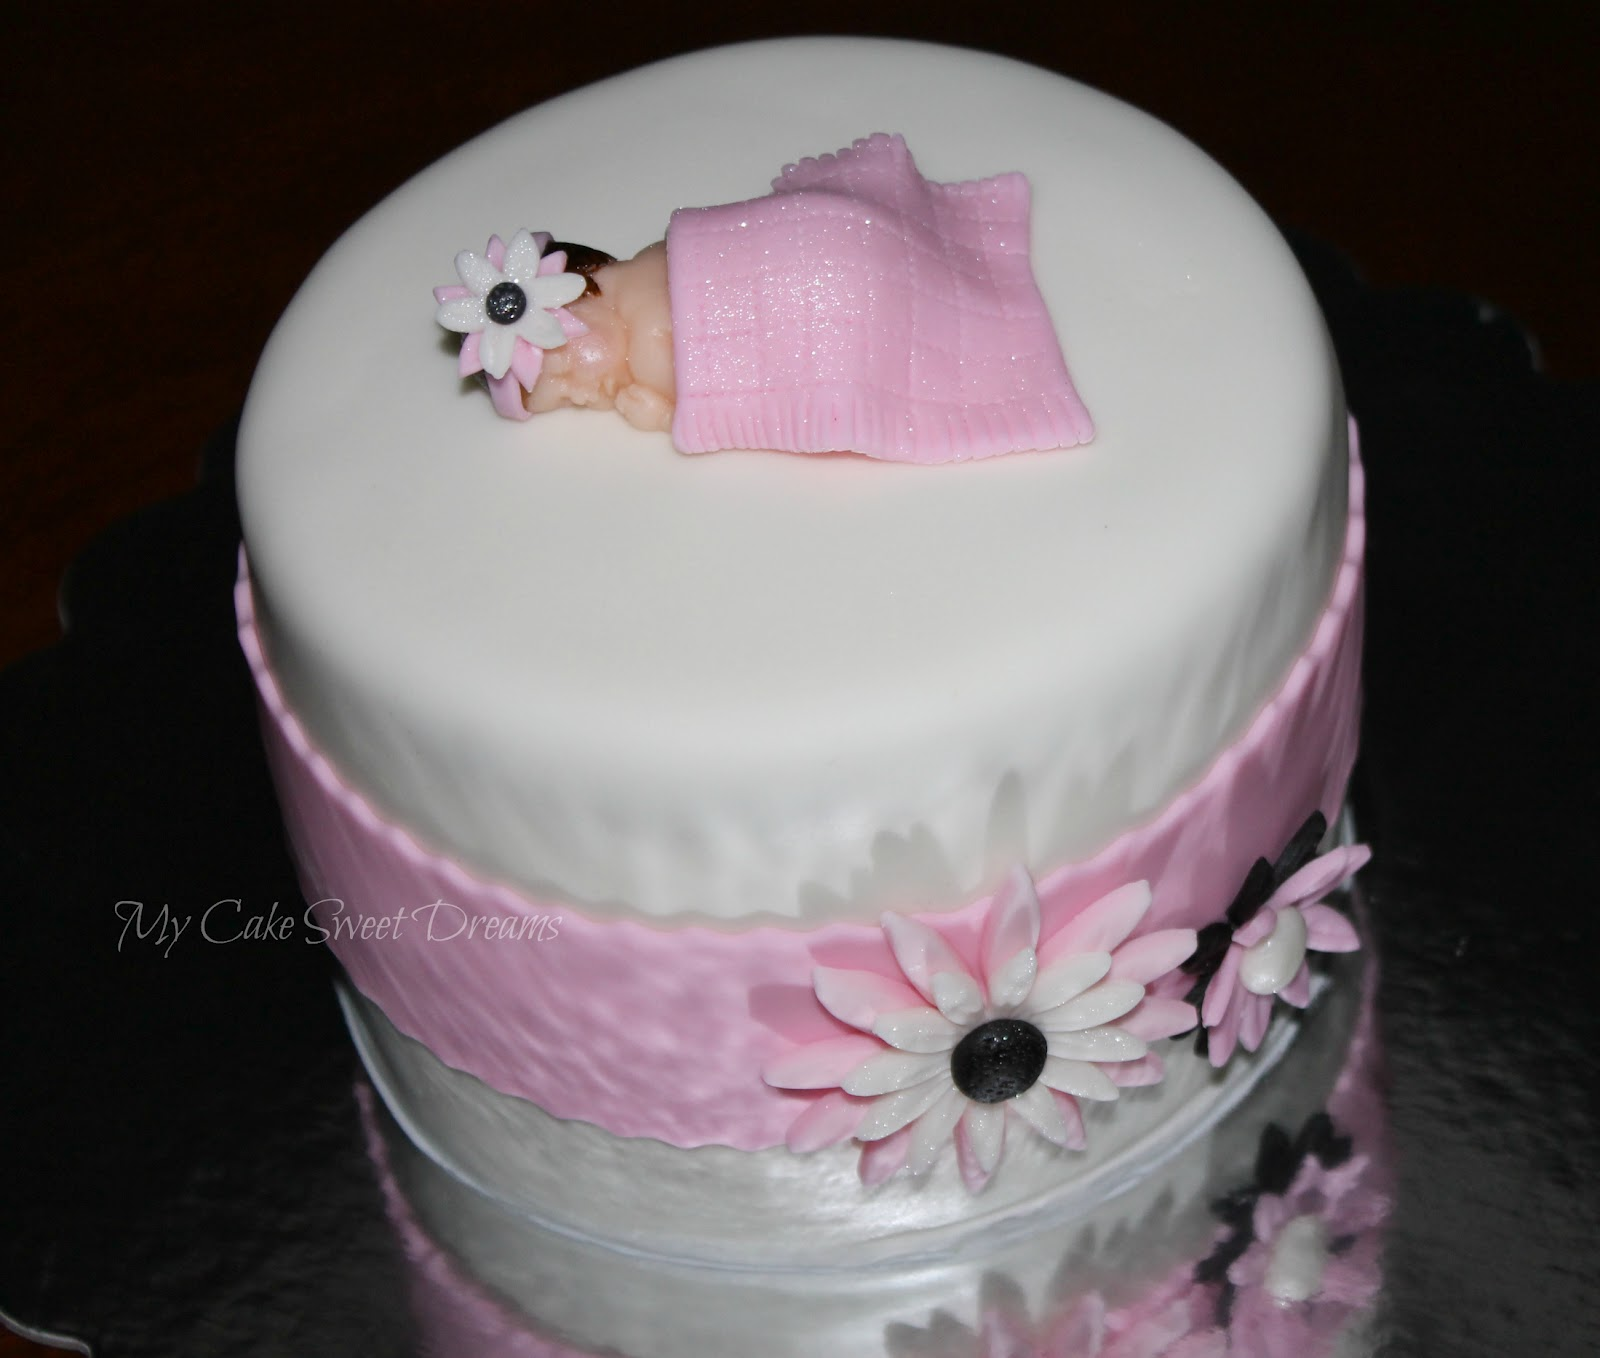 Cake Design Baby Shower Girl : My Cake Sweet Dreams: Baby Girl Shower Cake and Cupcakes